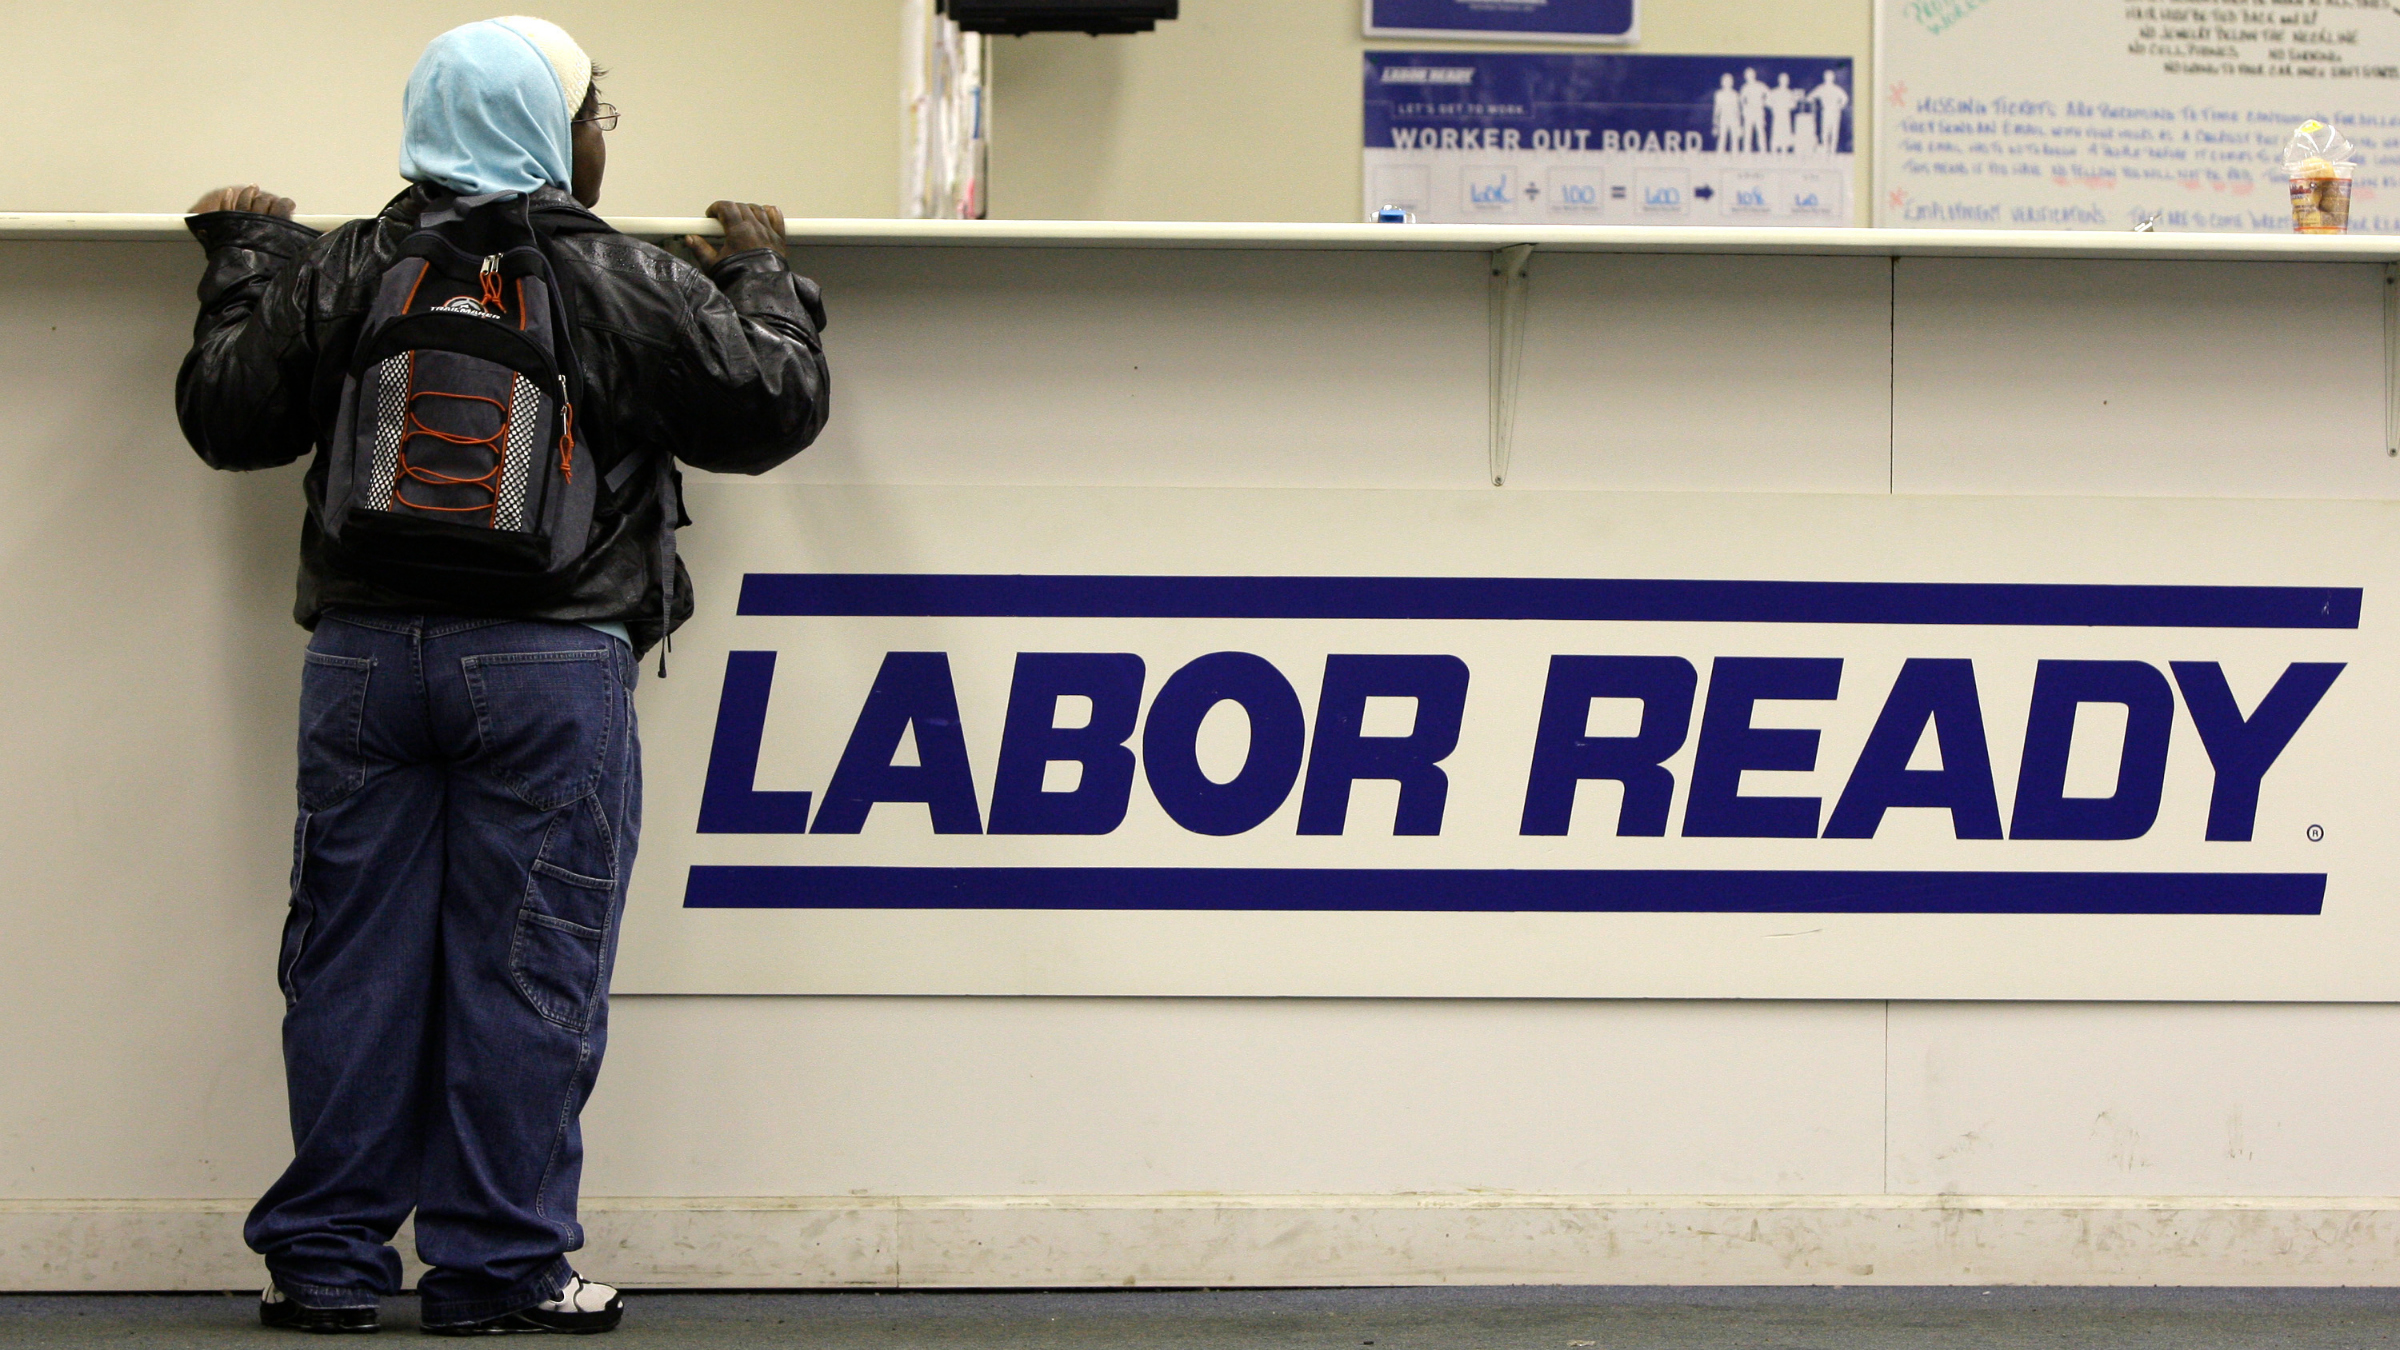 Labor Ready temporary employment agency.